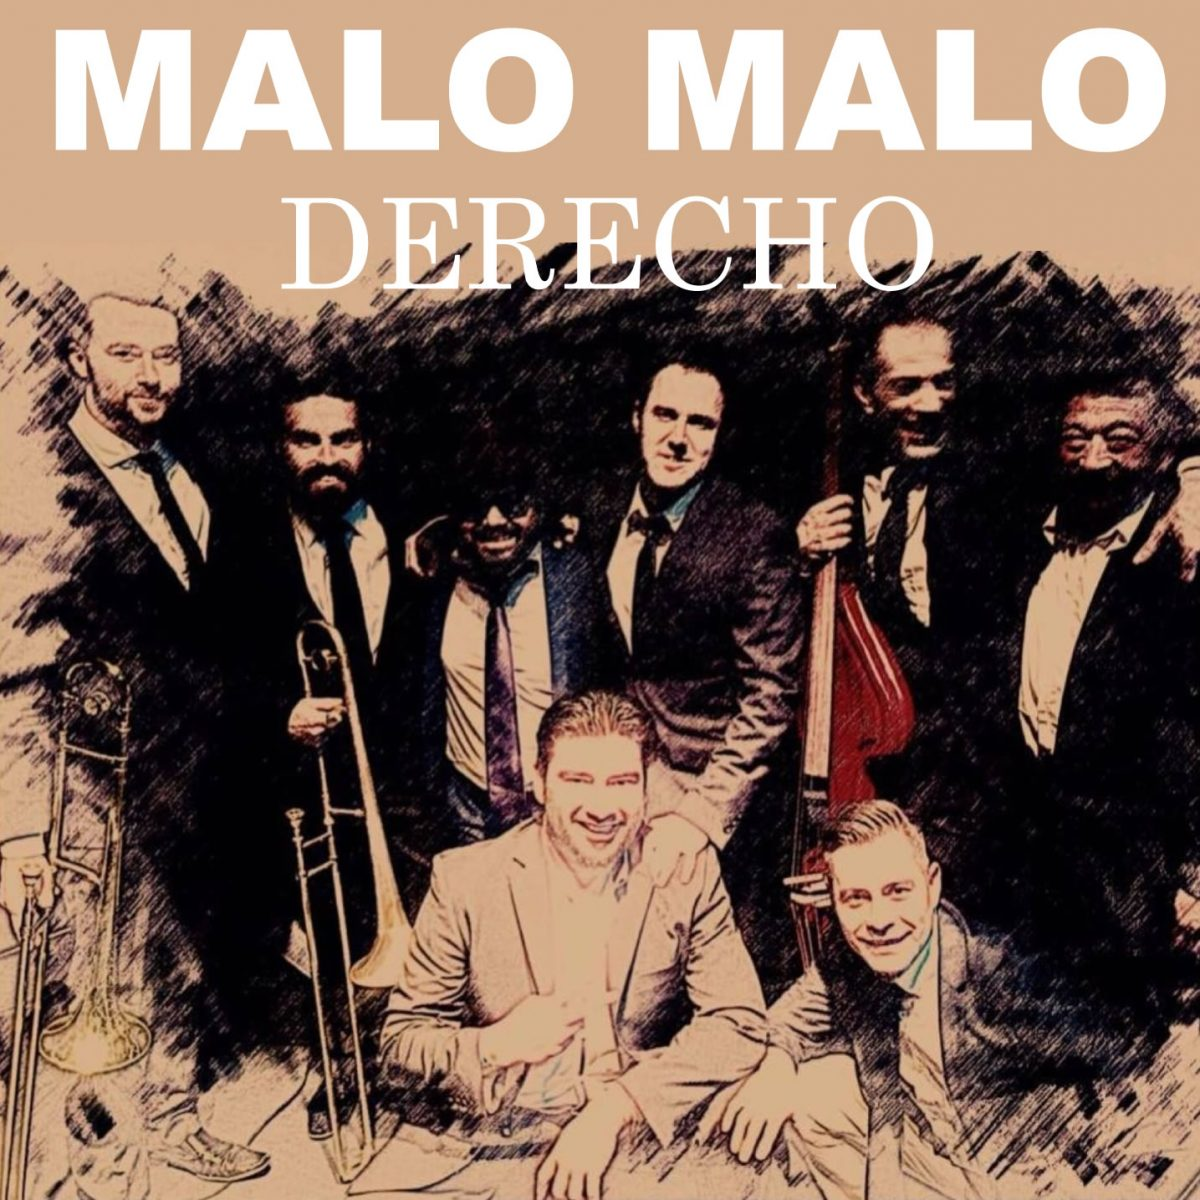 malo latin singles 1972 song by group led by jorge santana, younger brother of carlos santana the brothers santana introduced me to the latin flavor in music i love still today.